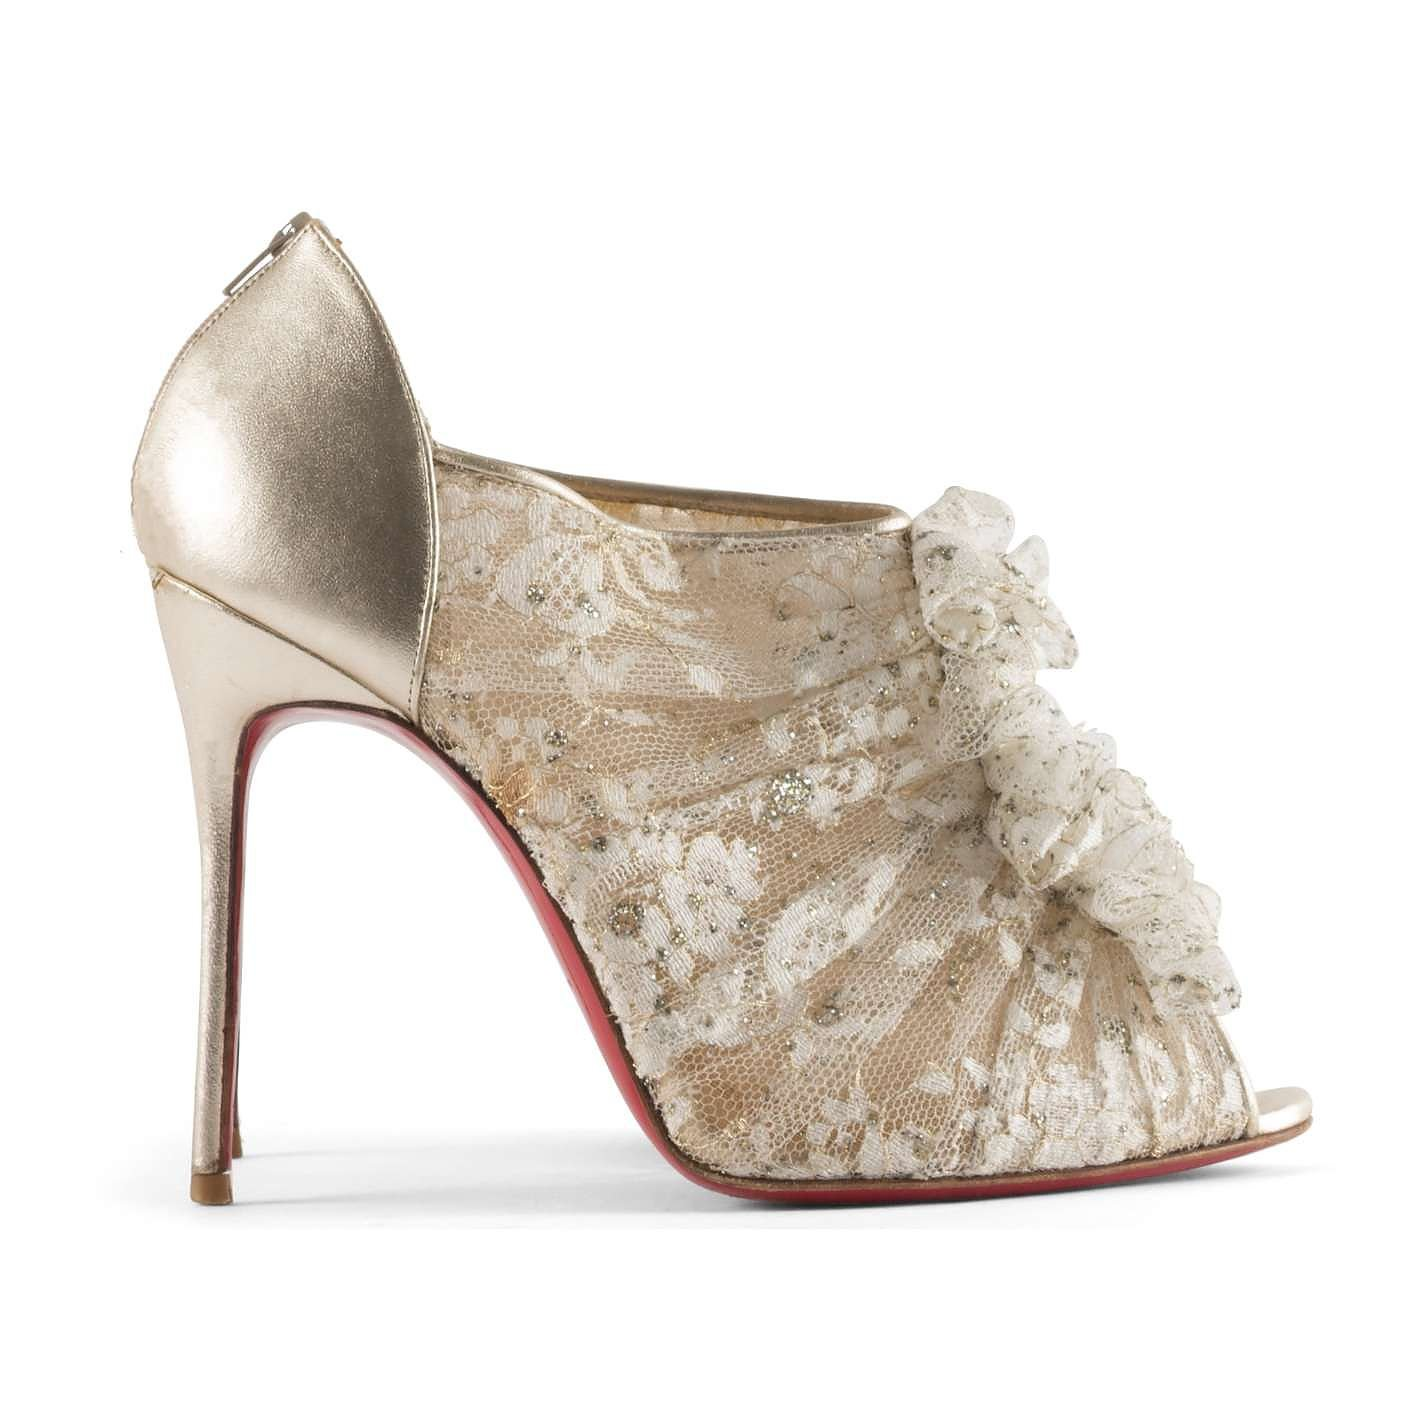 Christian Louboutin Lace and Leather Booties